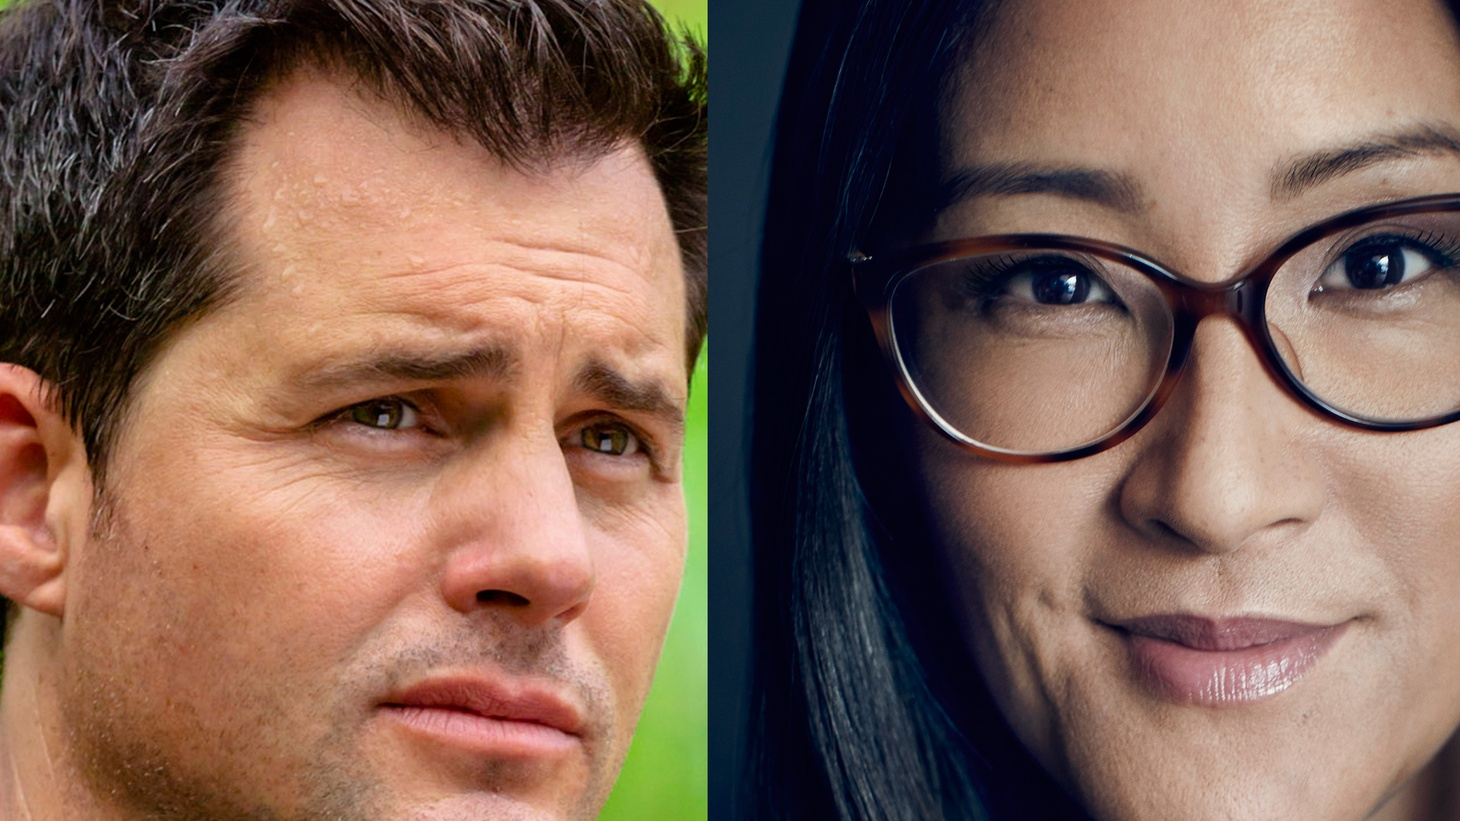 In 2015, actor Kristoffer Polaha booked what he thought would be a one-off gig in a Hallmark TV movie. Now, he's got 5 Hallmark films under his belt. He tells us how he and the Hallmark Channel fell in love.